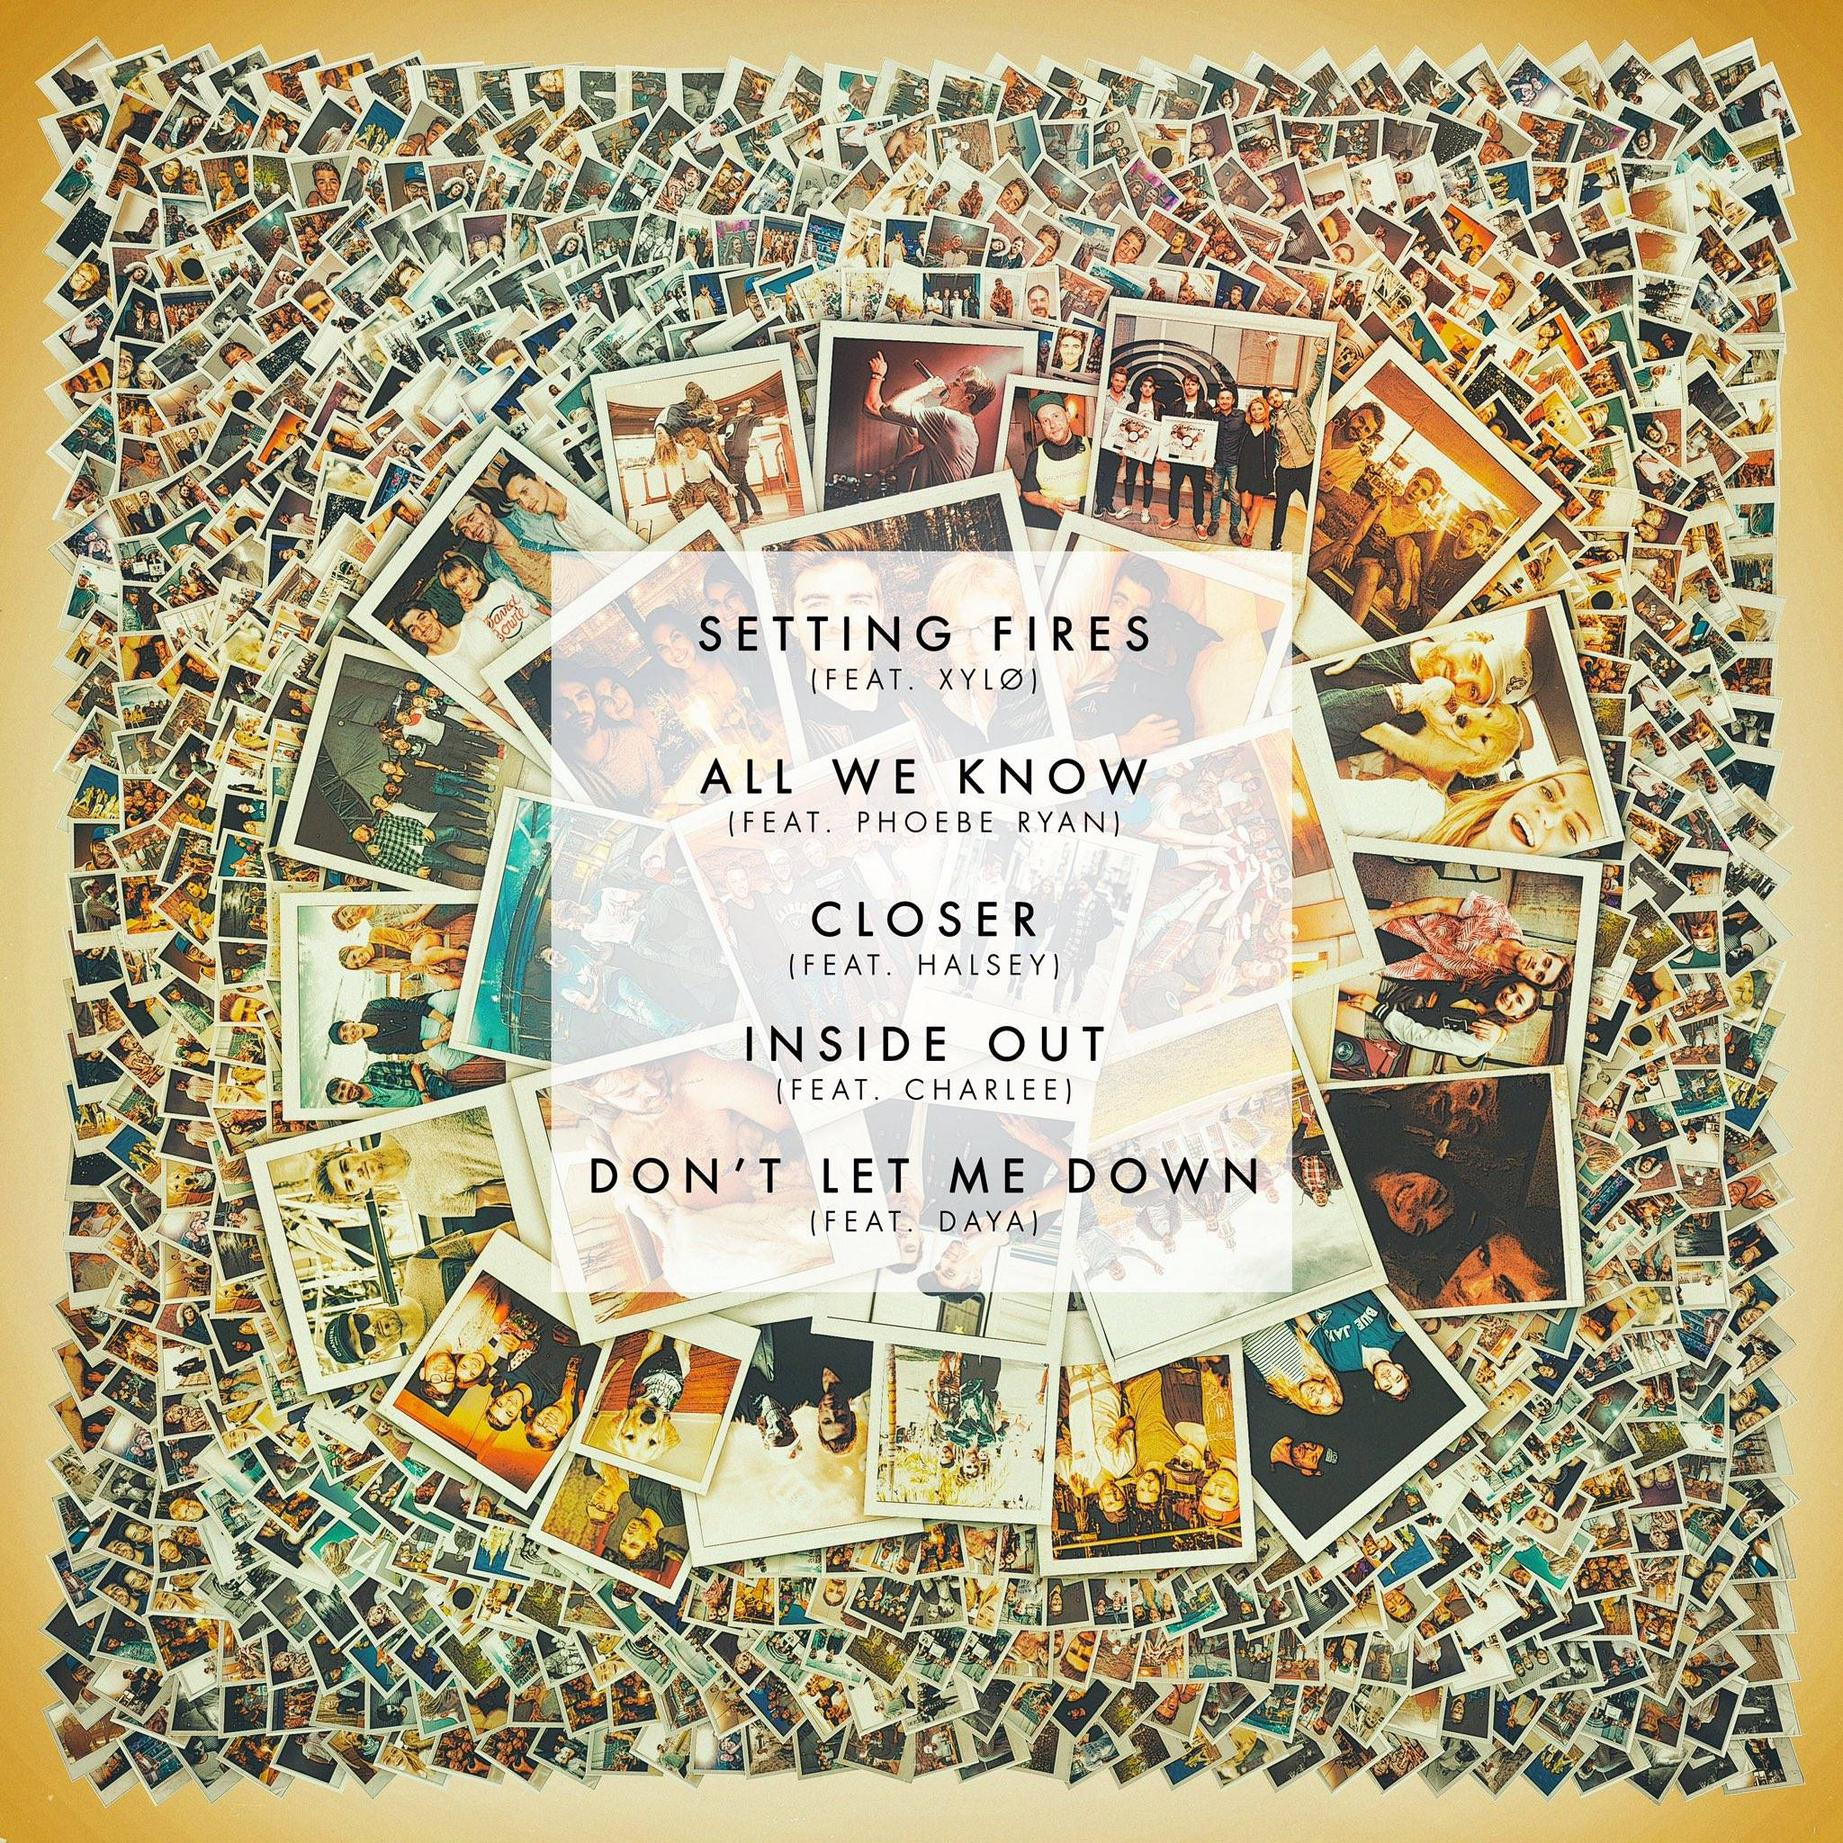 The Chainsmokers Reveal Full Tracklist For Their Collage EP